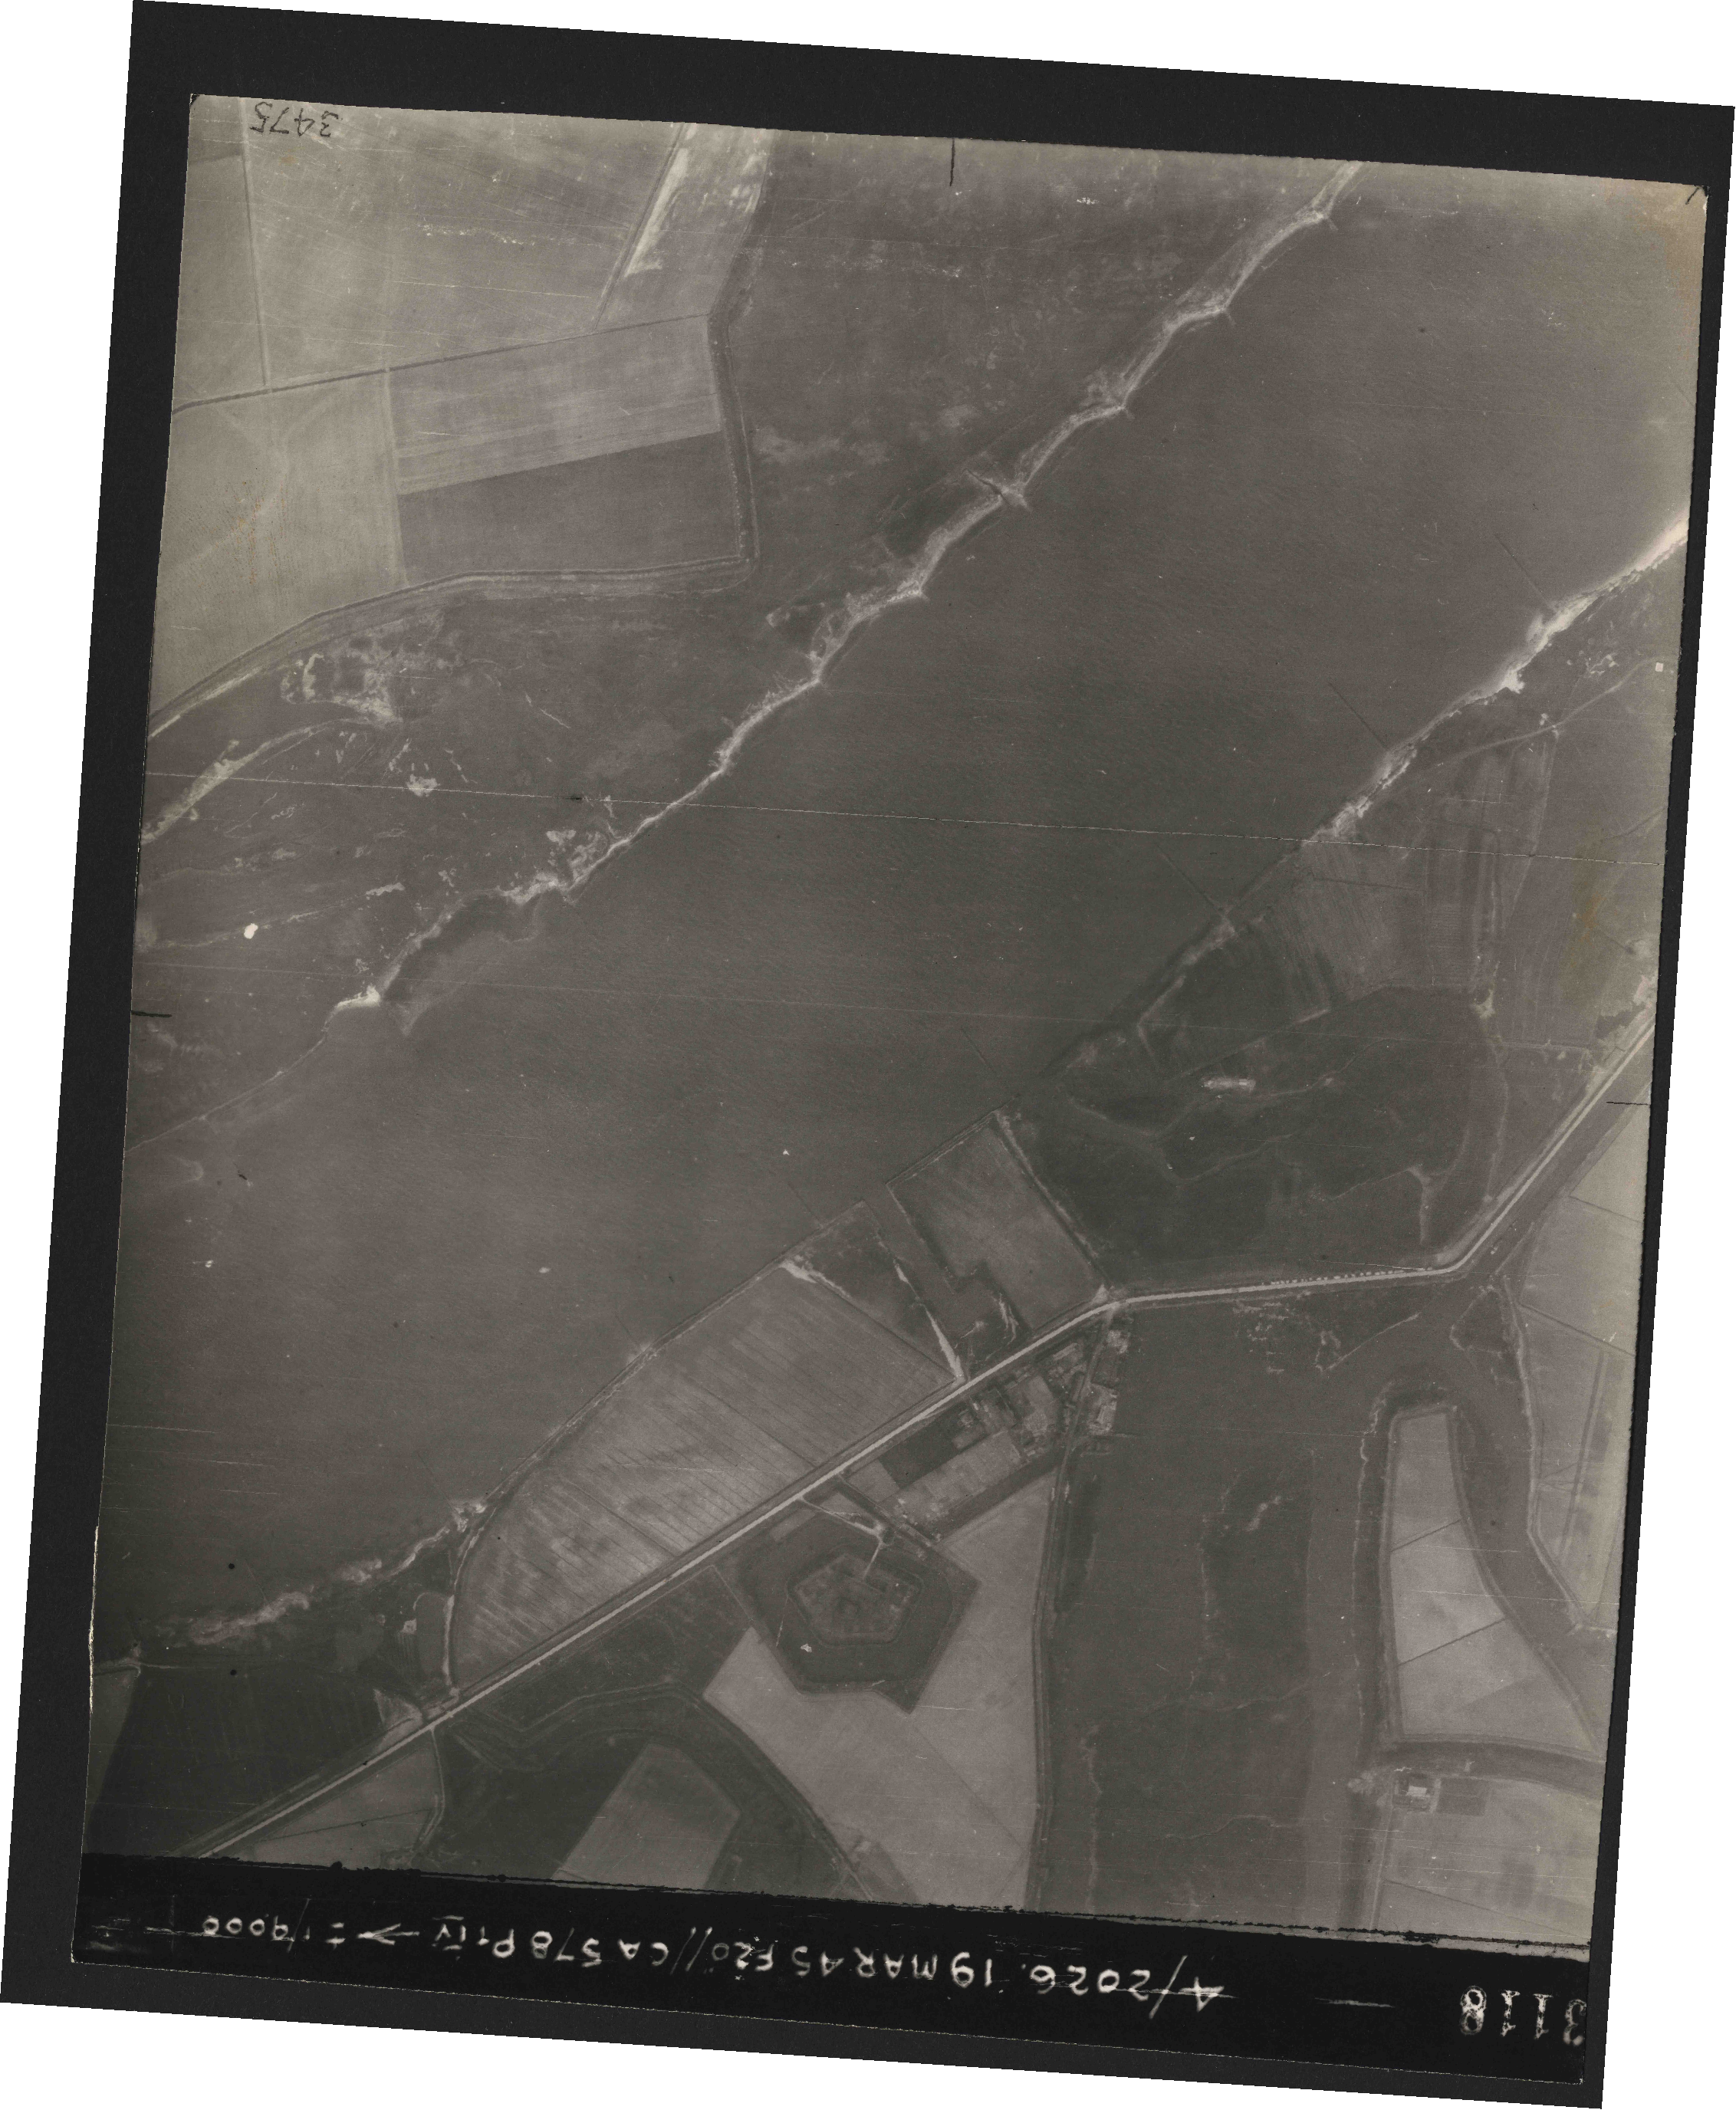 Collection RAF aerial photos 1940-1945 - flight 012, run 07, photo 3118